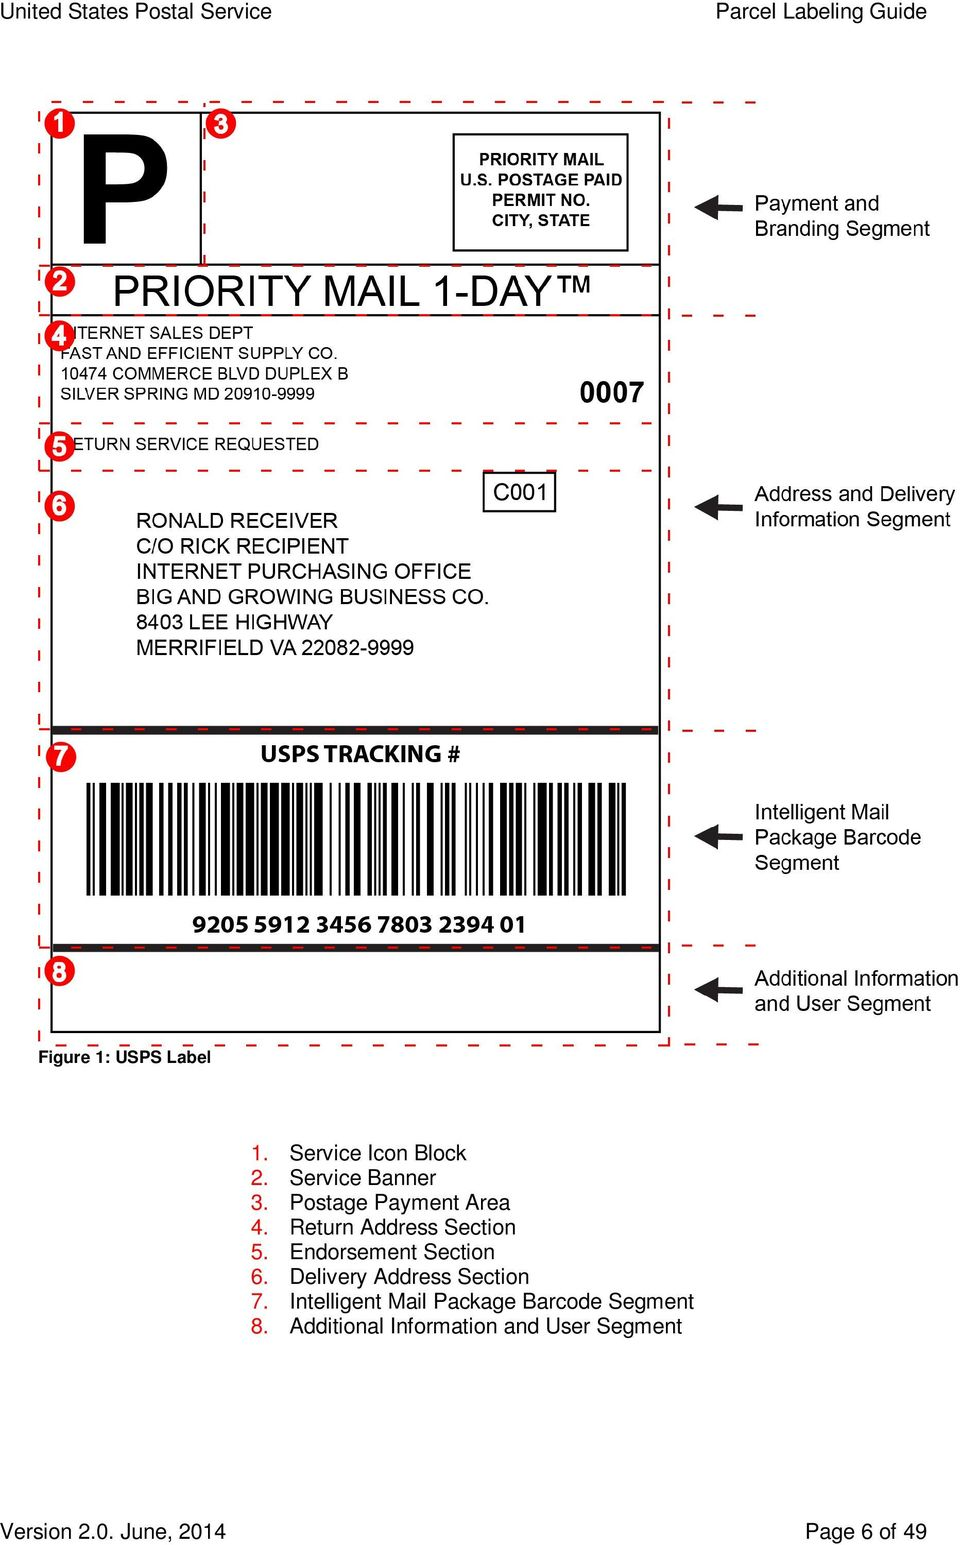 Delivery Address Section 7. Intelligent Mail Package Barcode Segment 8.